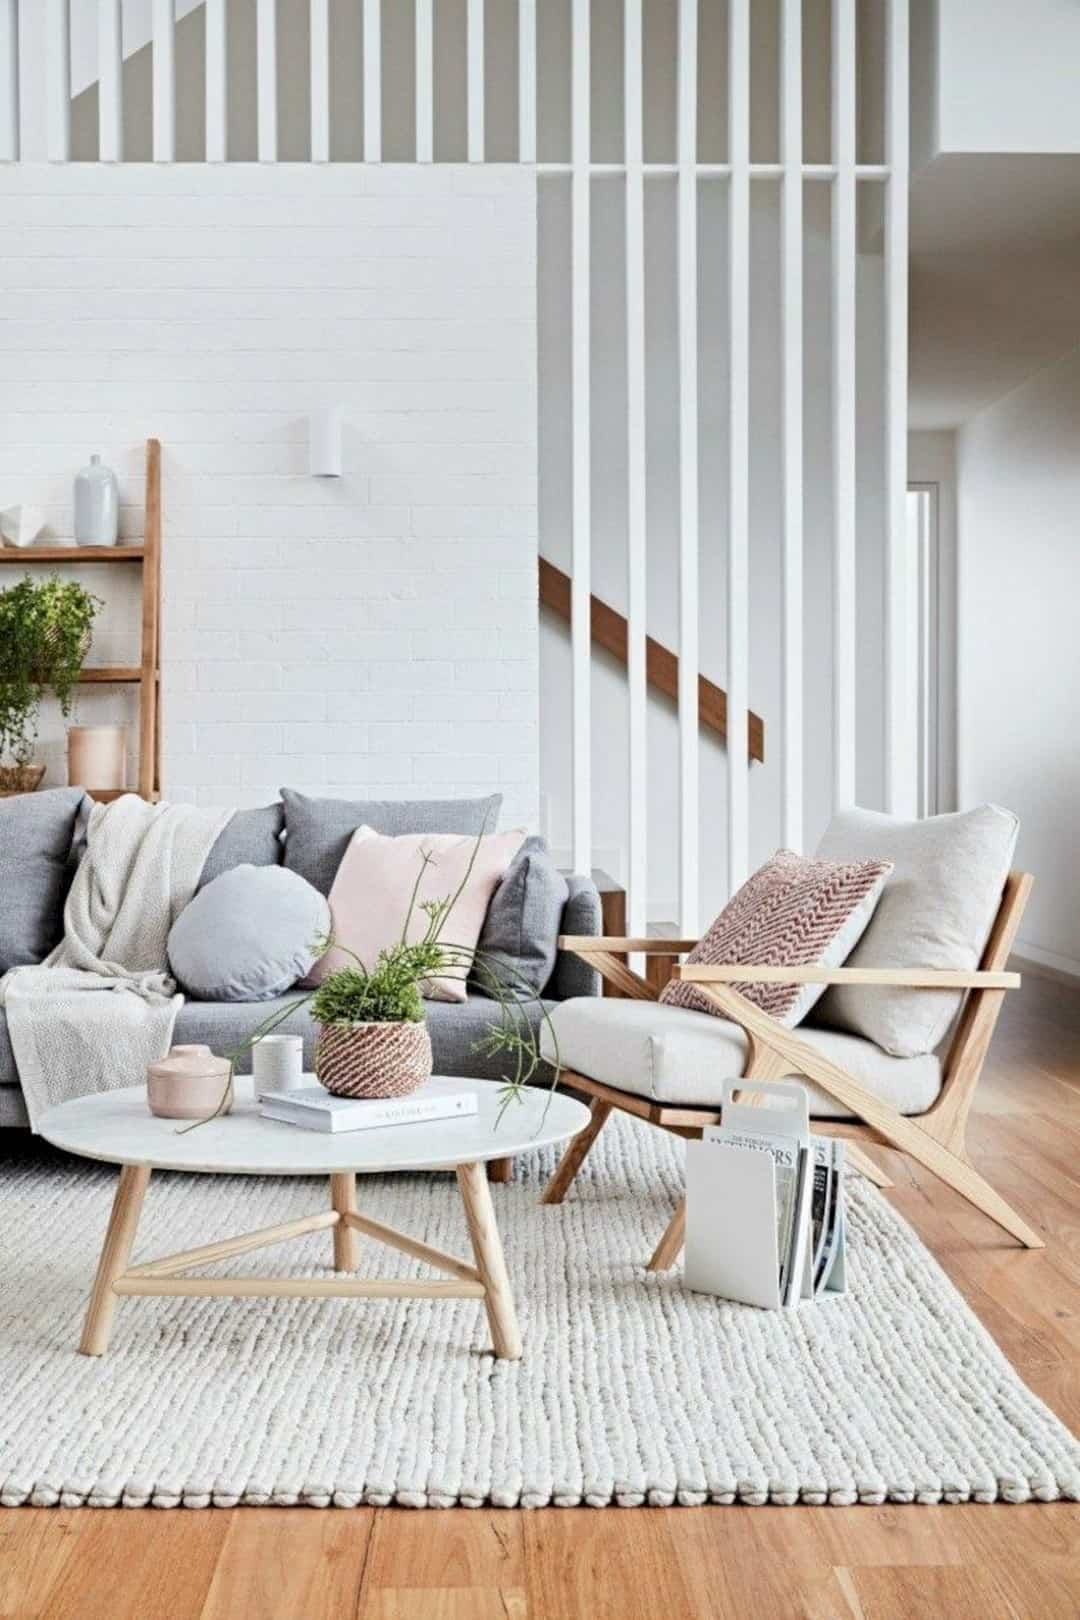 Nordic style coffee tables